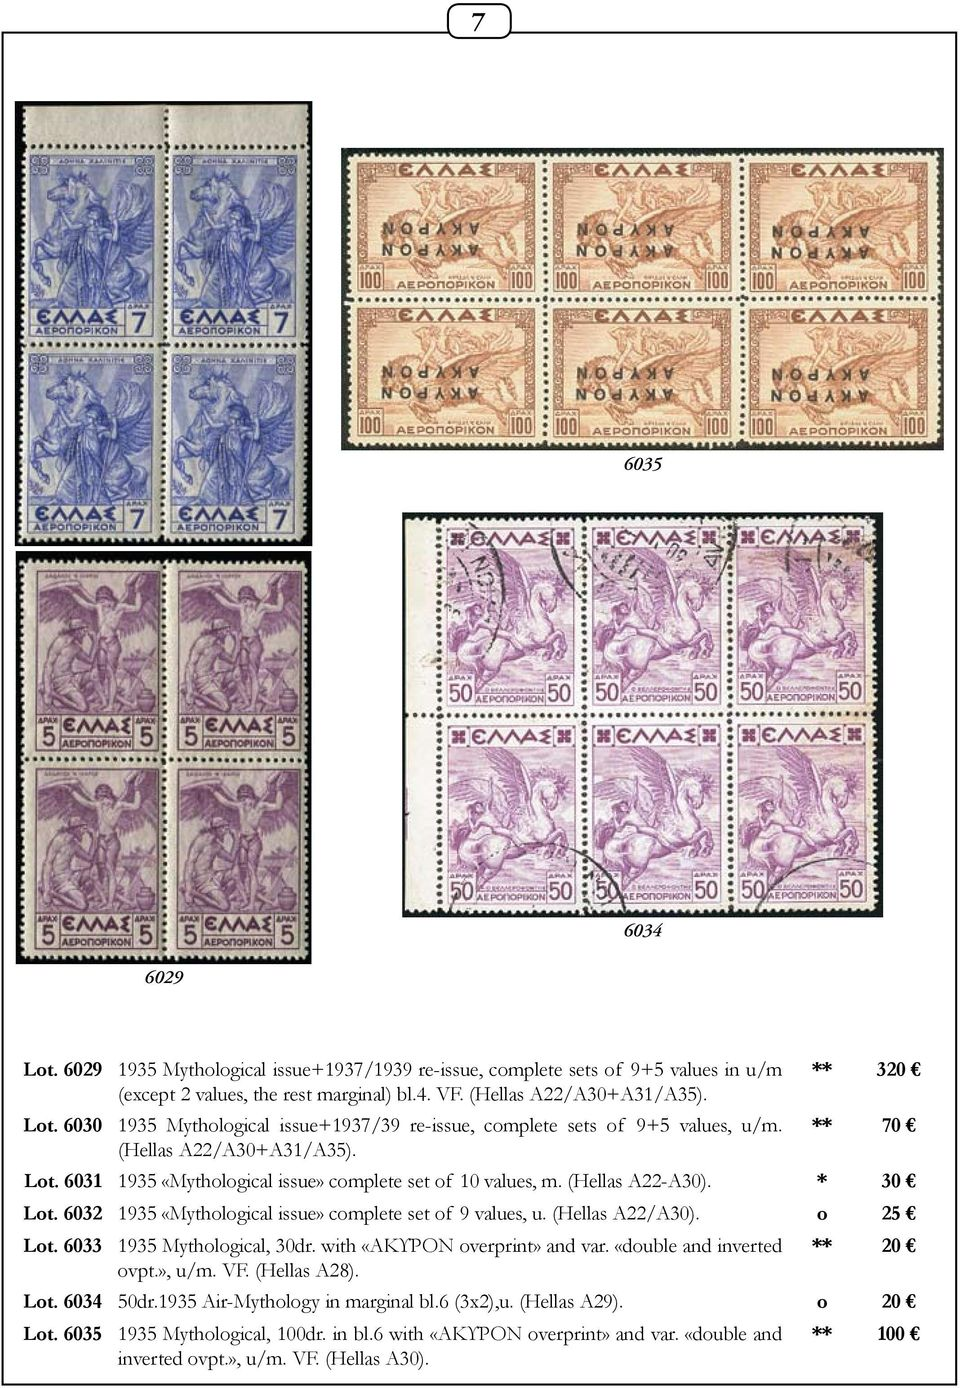 * 30 Lot. 6032 1935 «Mythological issue» complete set of 9 values, u. (Hellas A22/A30). o 25 Lot. 6033 1935 Mythological, 30dr. with «ΑΚΥΡΟΝ overprint» and var. «double and inverted ** 20 ovpt.», u/m.